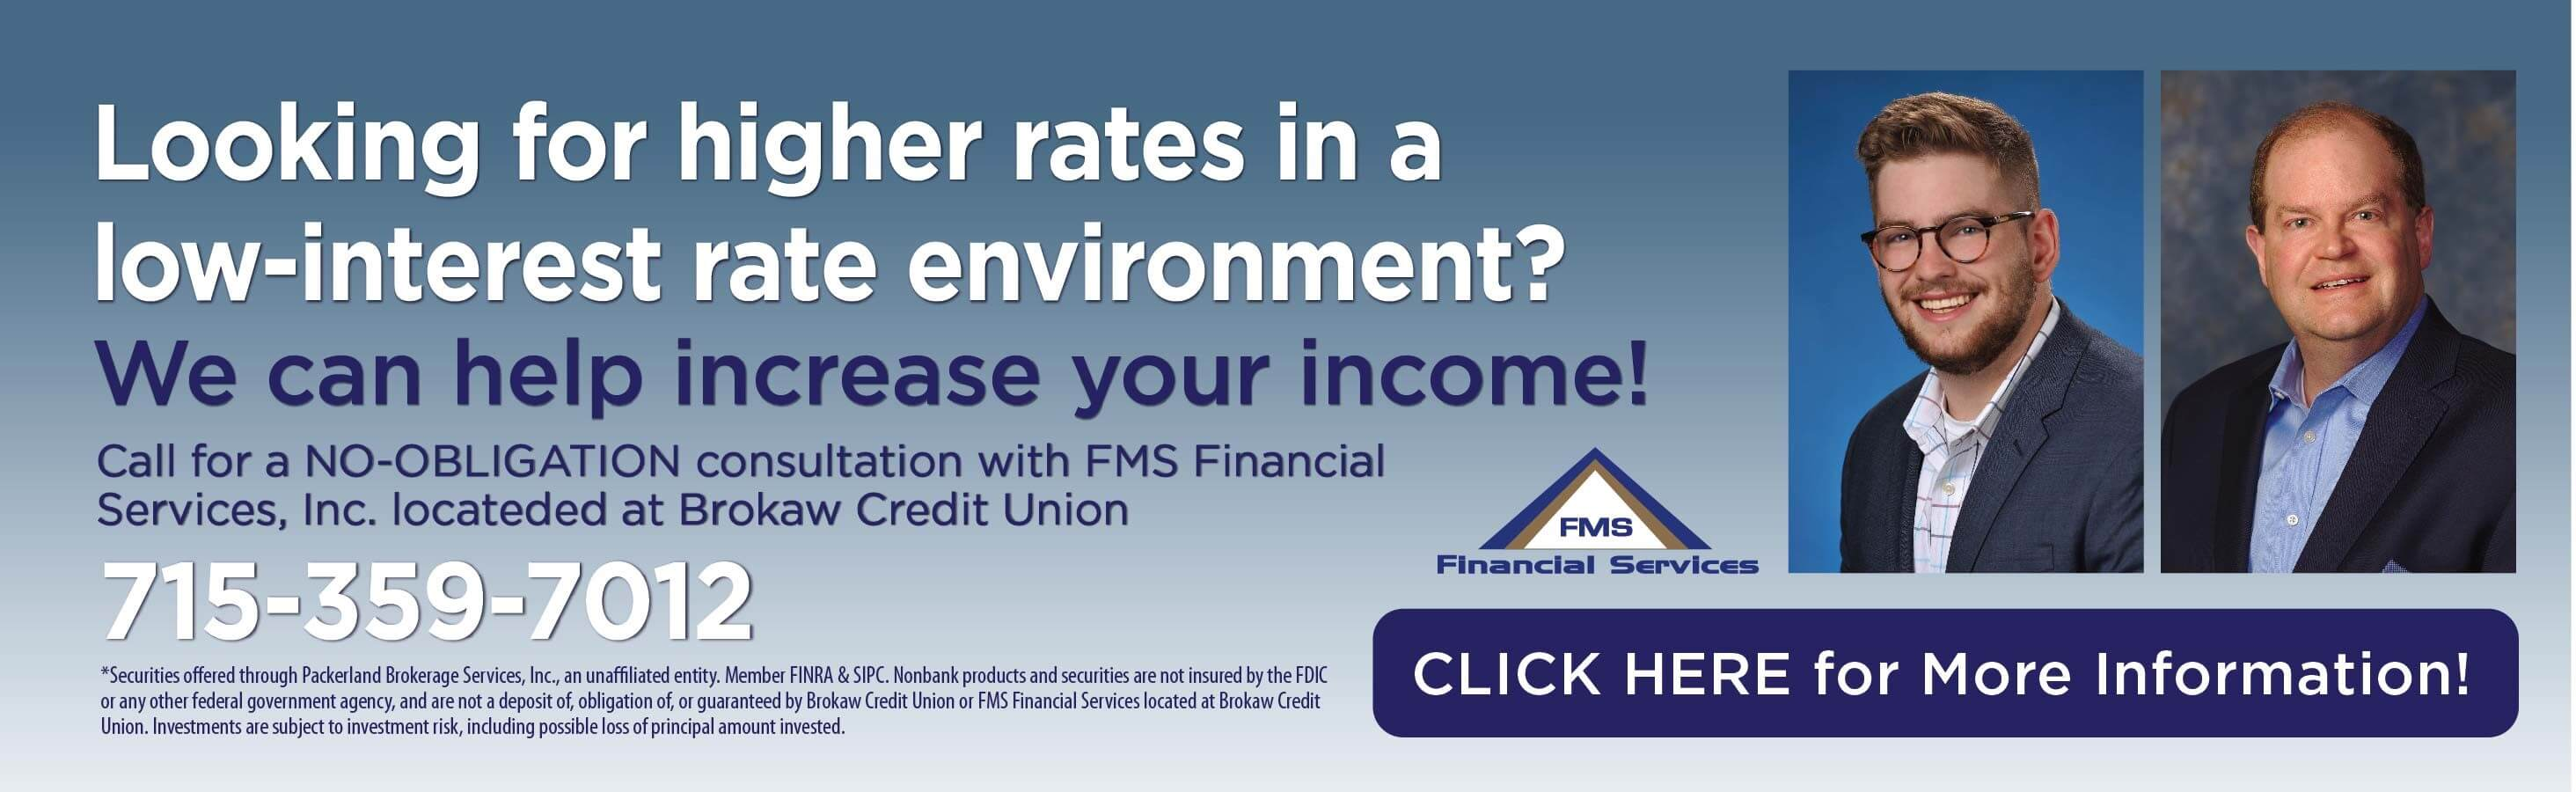 Free Consultation with FMS Financial Services